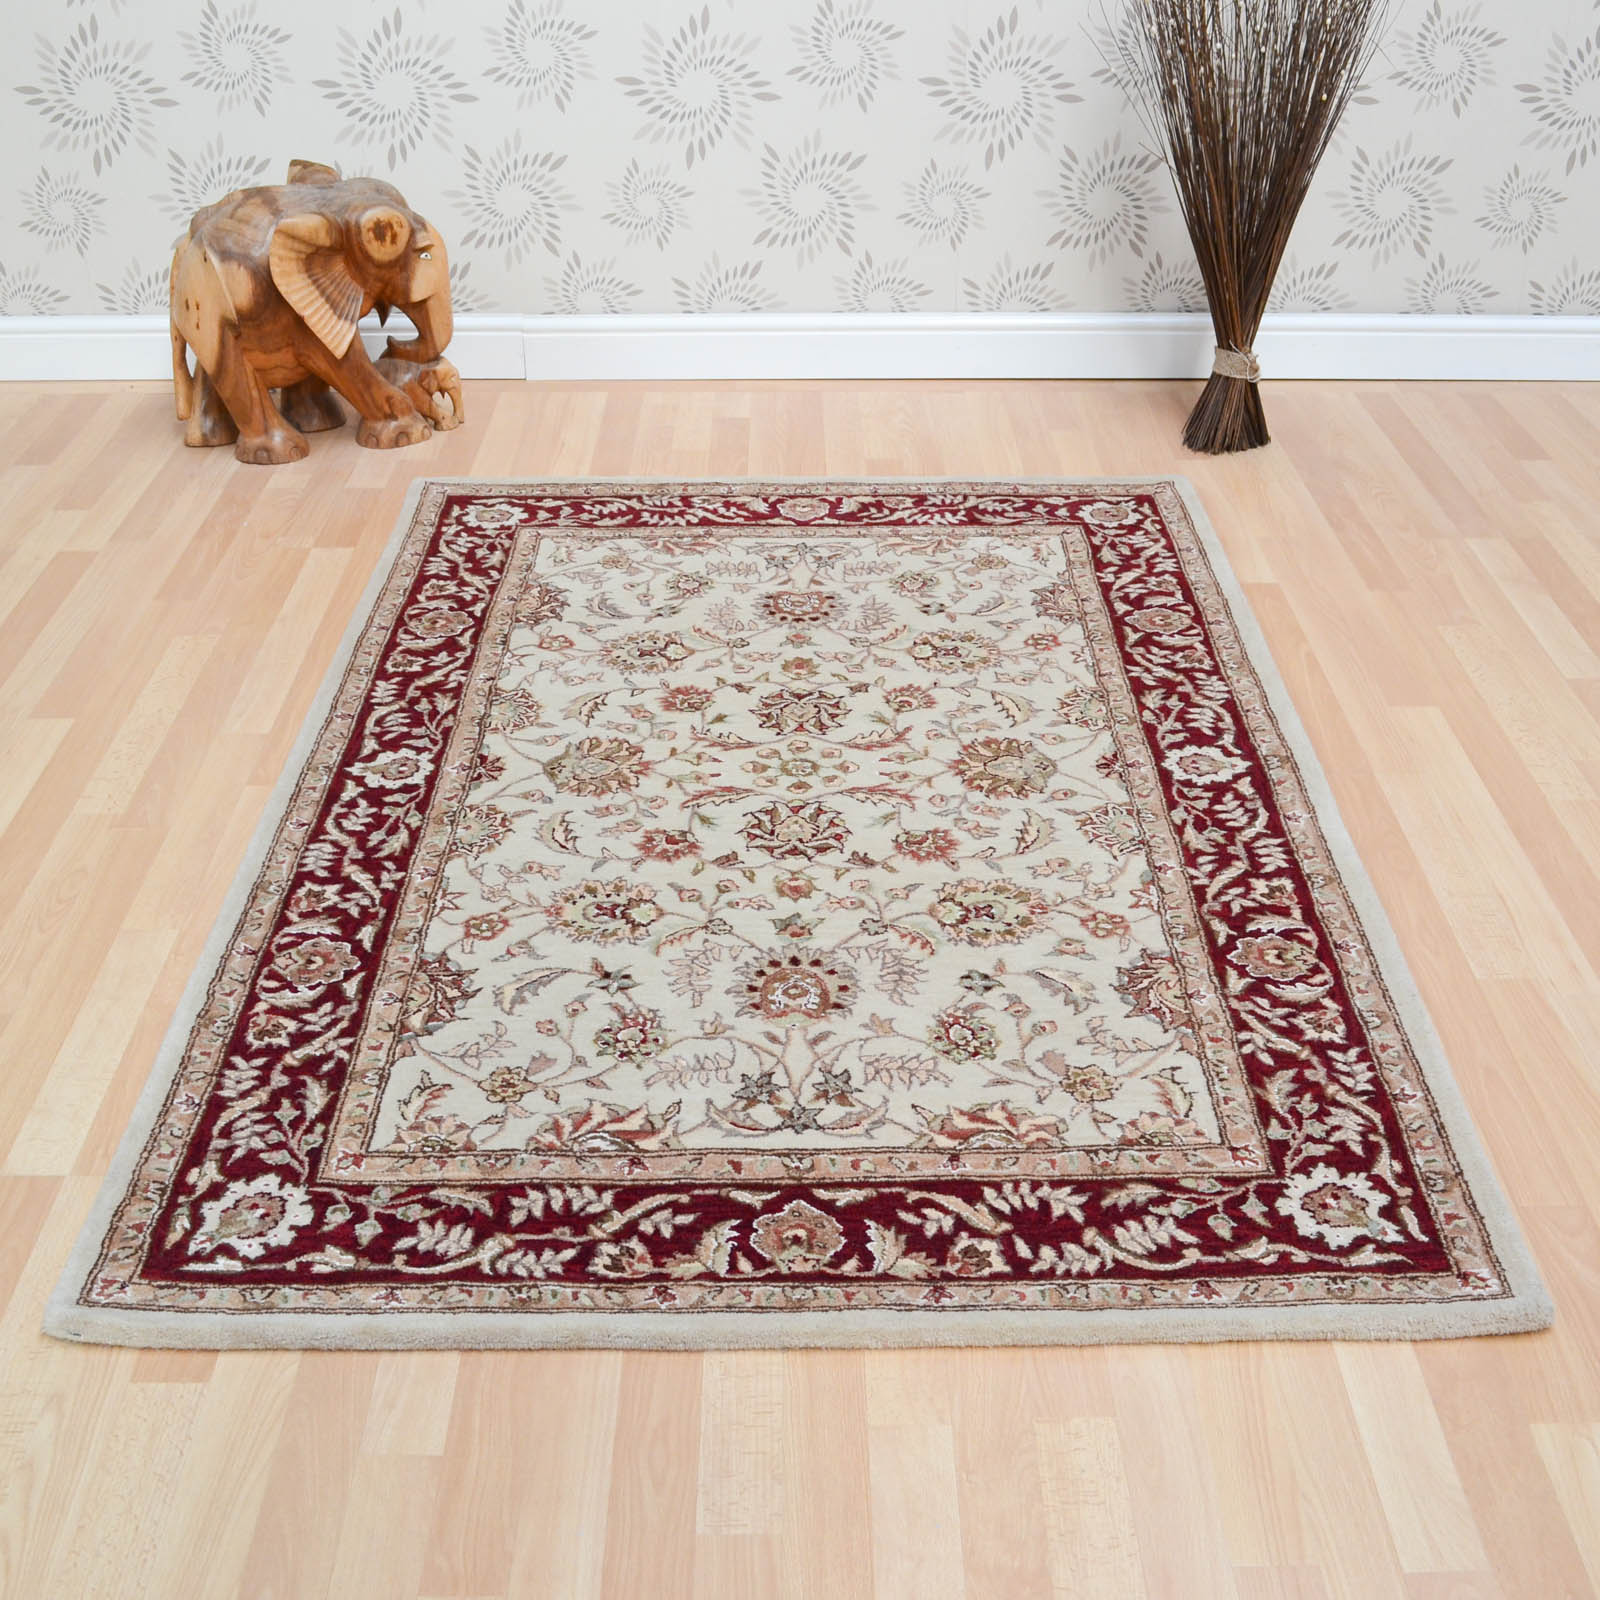 Buckingham Ziegler Rugs in Gold Red